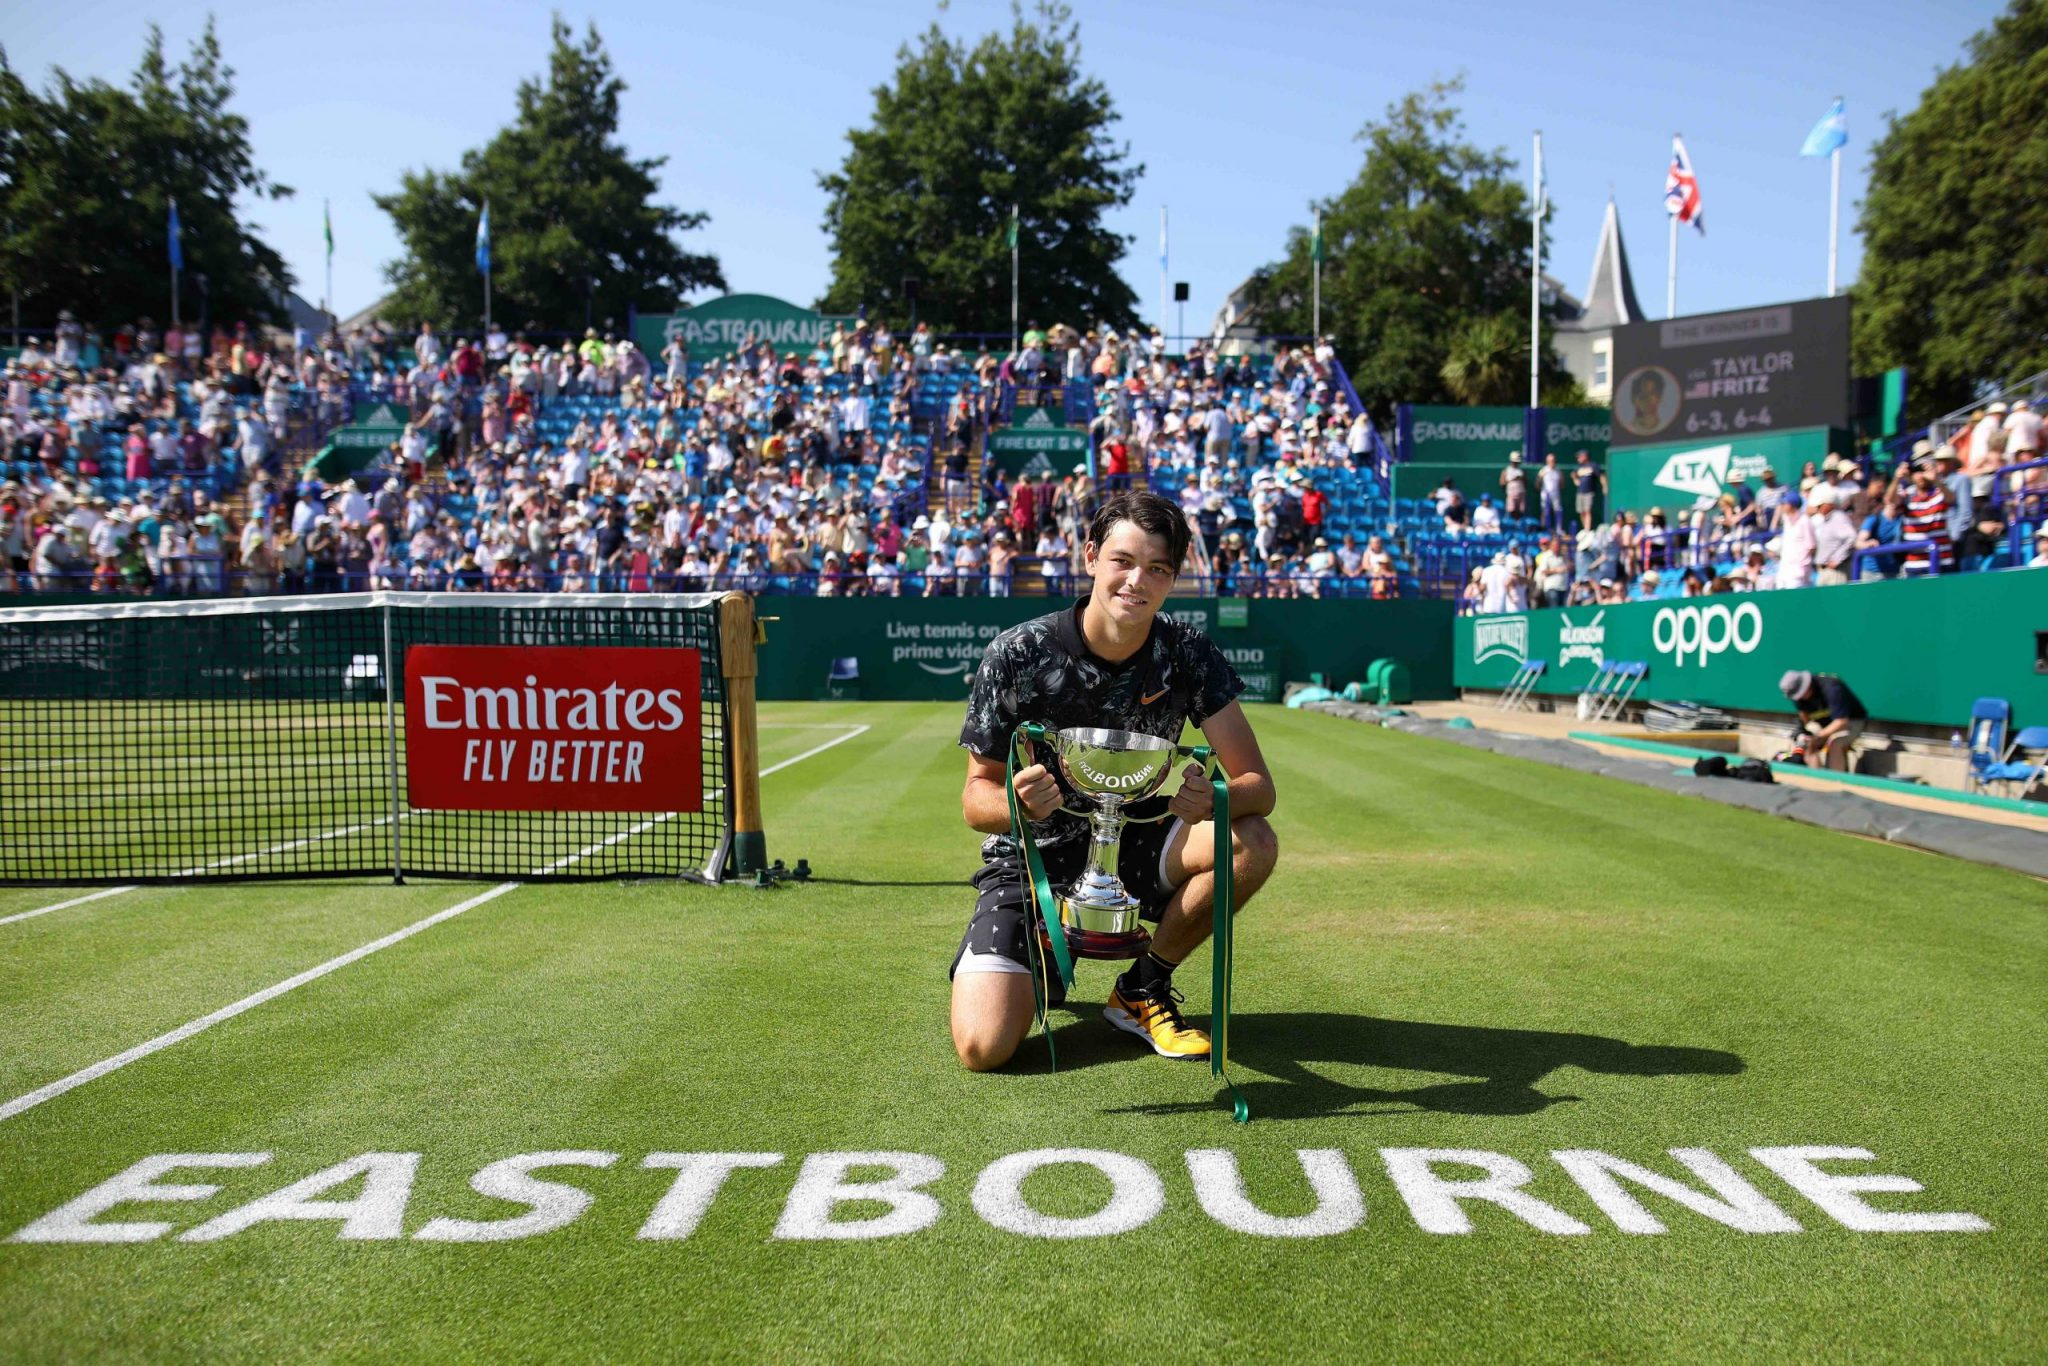 EASTBOURNE, ENGLAND - JUNE 29: Taylor Fritz of USA celebrates with the cup after winning the men's singles final against Sam Querrey of USA during day six of the Nature Valley International at Devonshire Park on June 29, 2019 in Eastbourne, United Kingdom. (Photo by Charlie Crowhurst/Getty Images for LTA) *** Local Caption *** Taylor Fritz